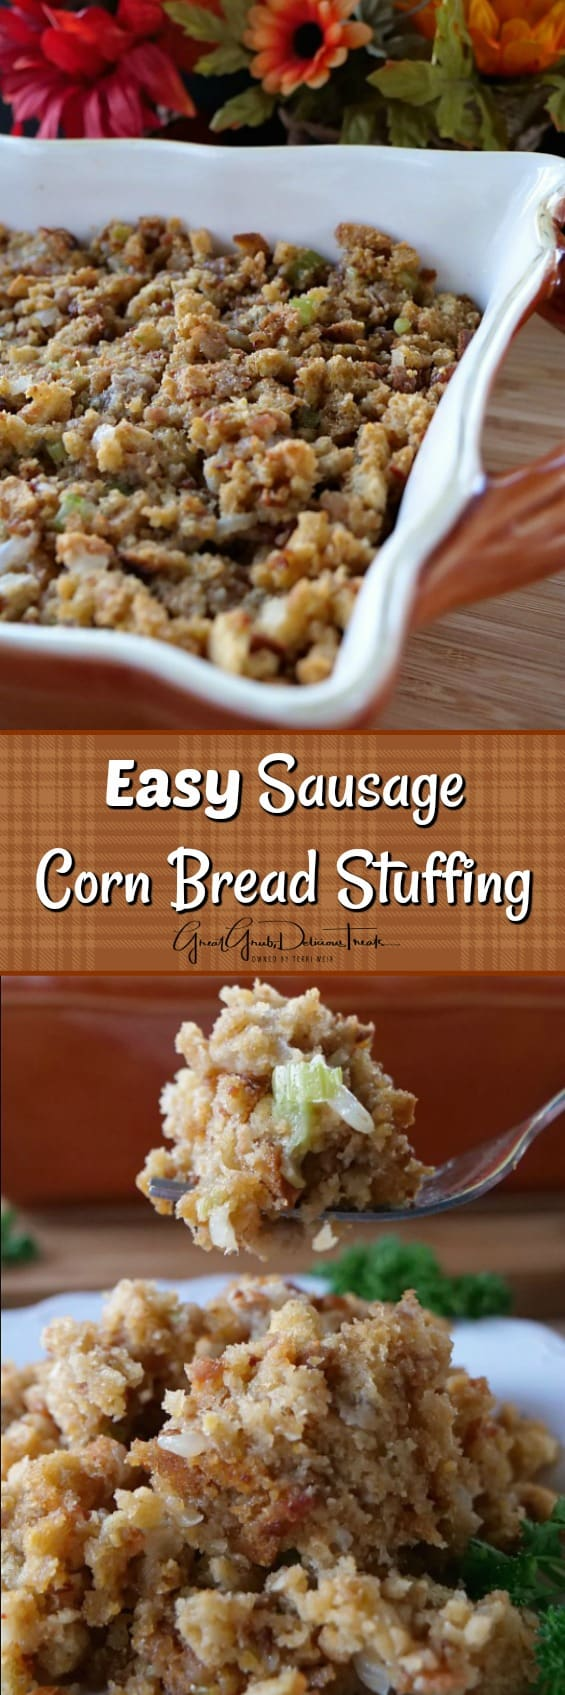 Easy Sausage Corn Bread Stuffing